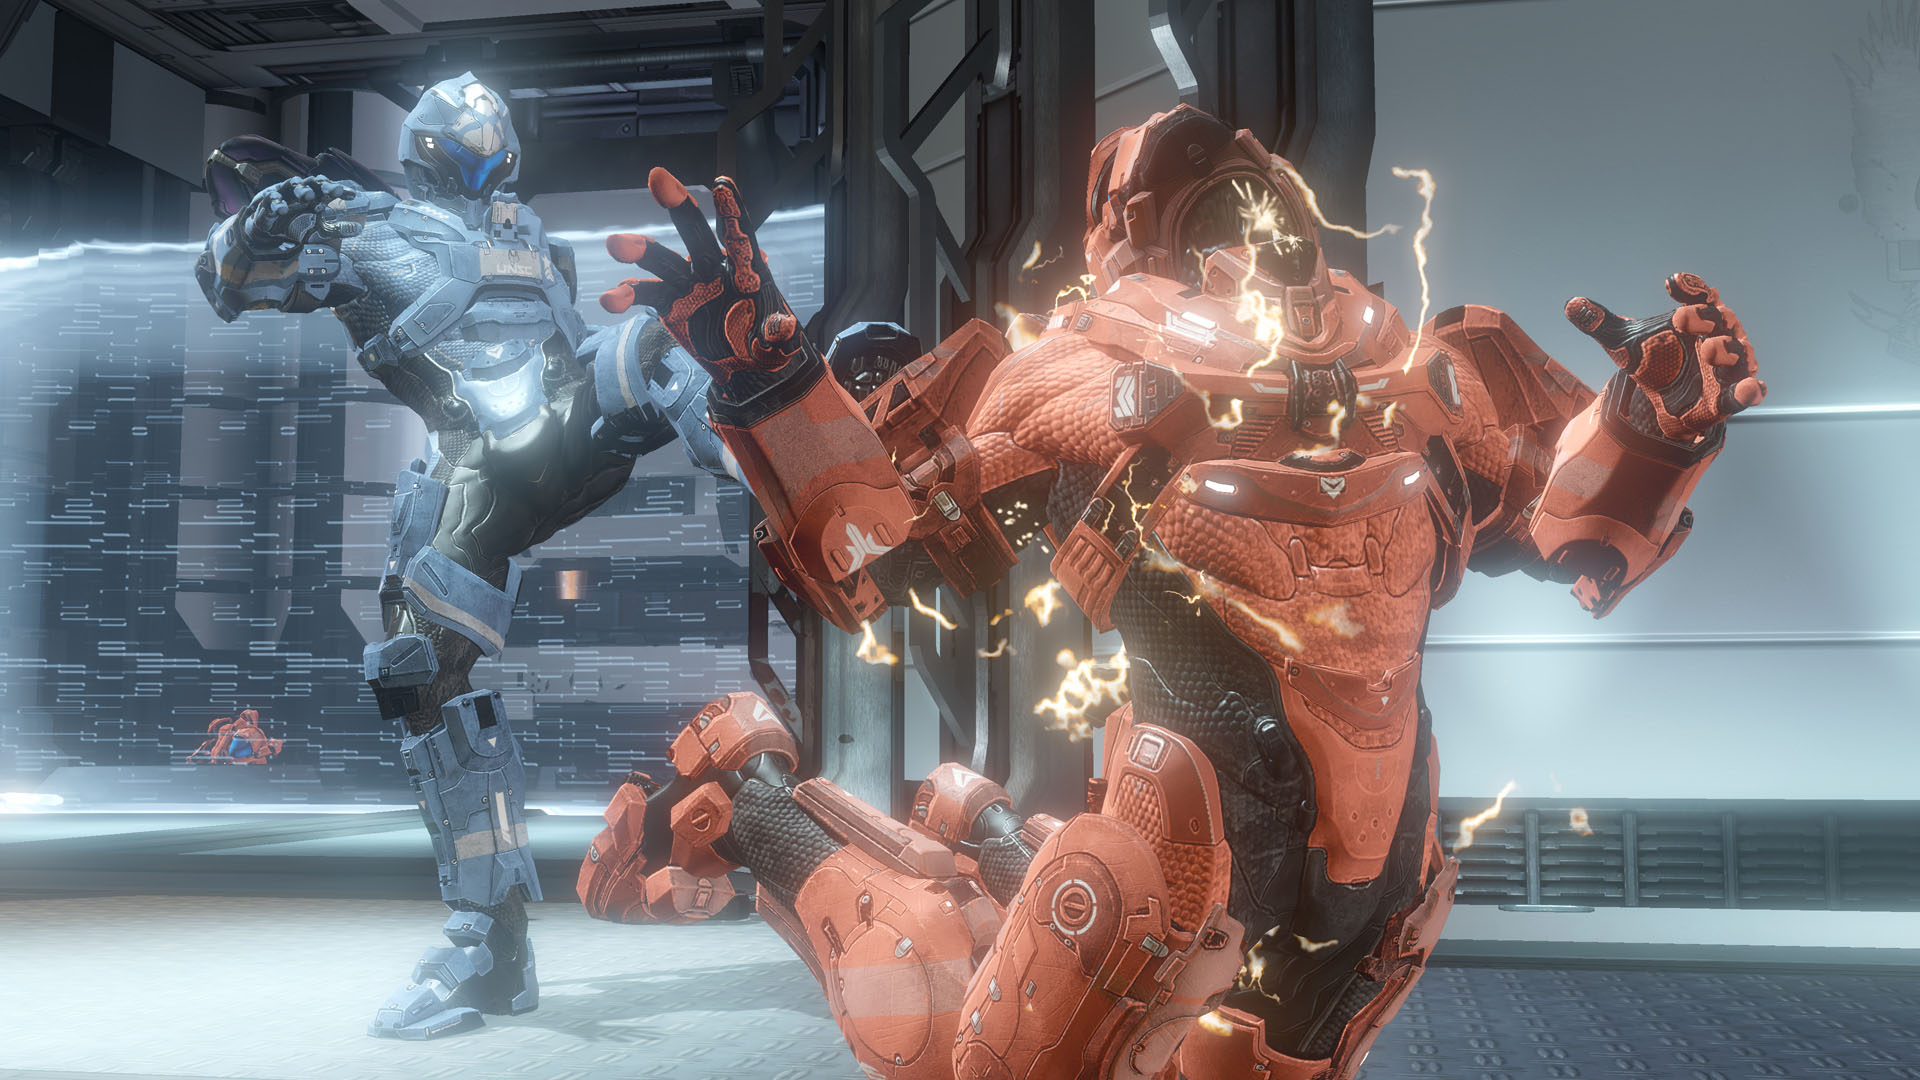 Halo 4 review: the gho...